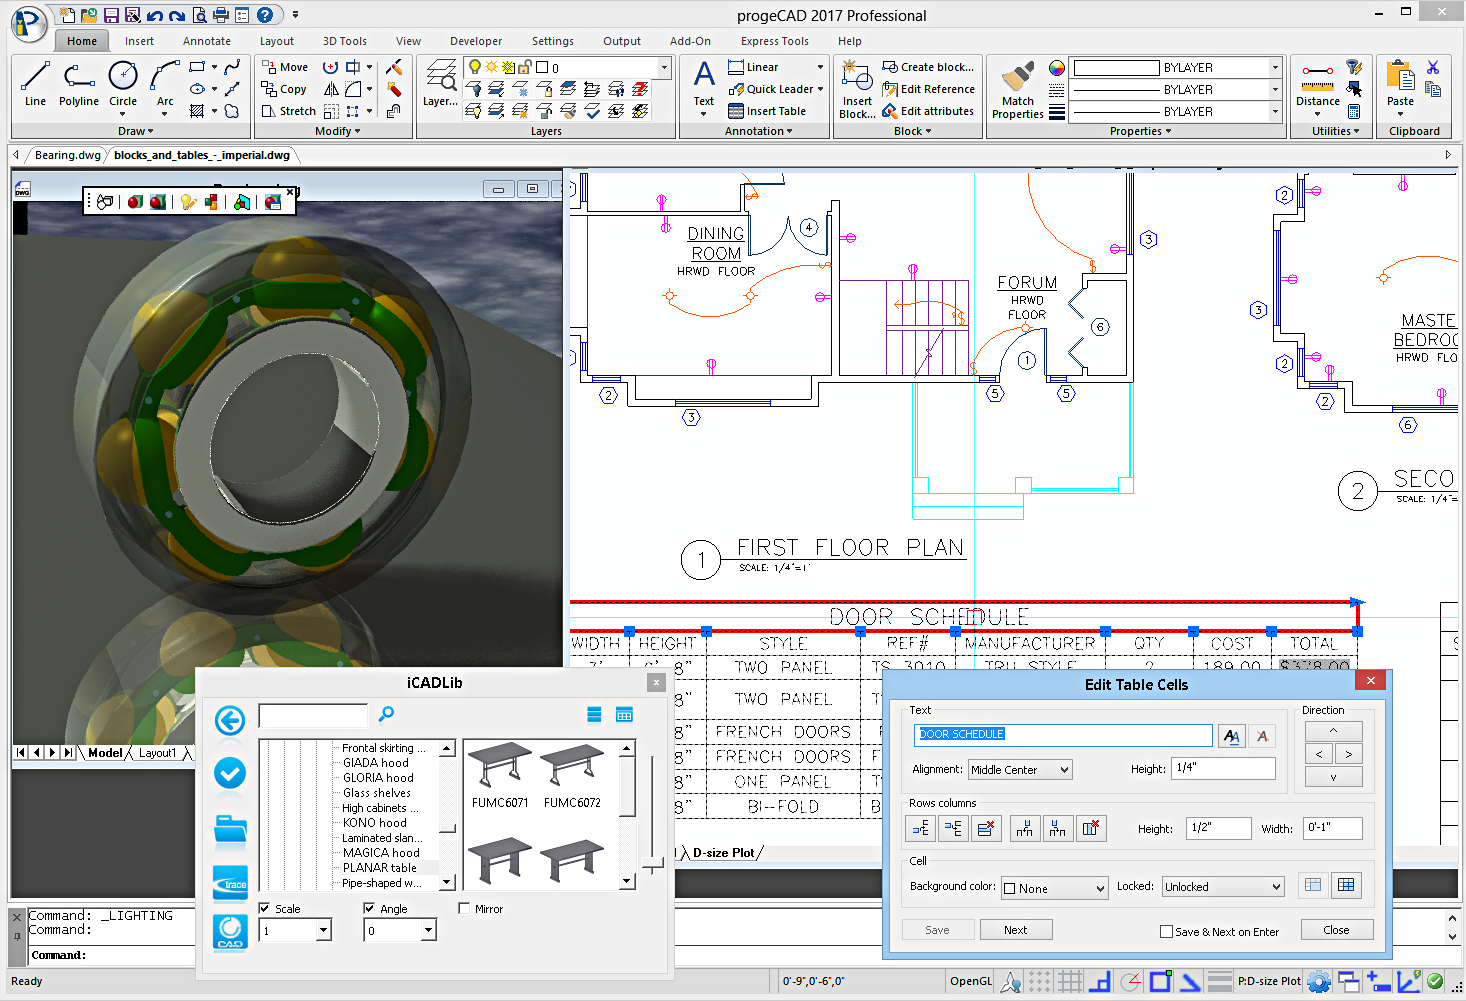 Progecad 2018 professional cad software 18 0 2 8 free for Online cad program